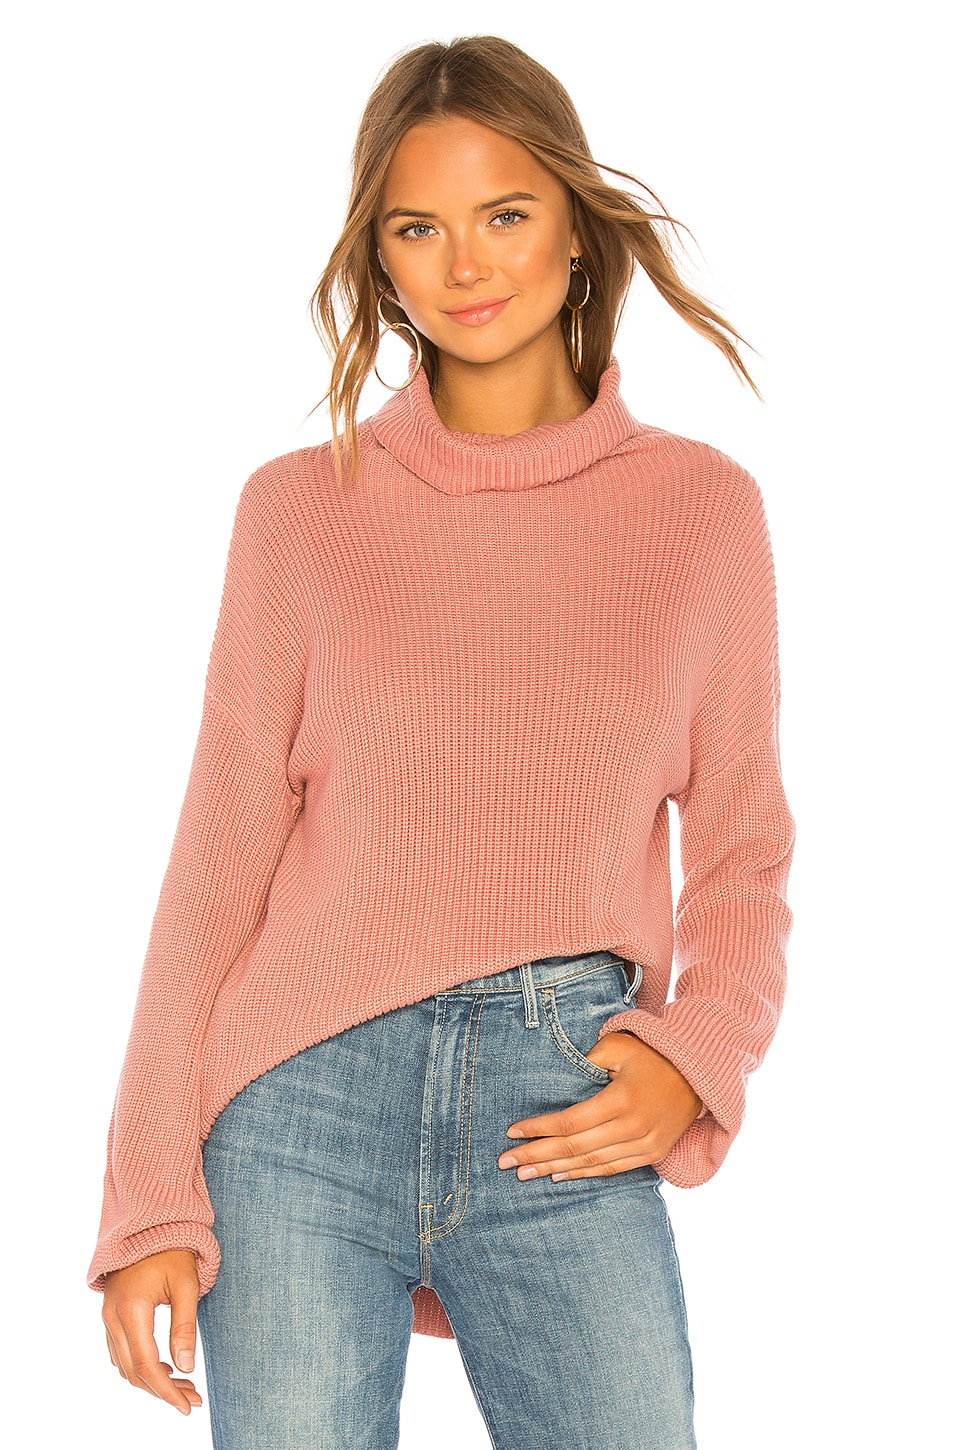 525 america Balloon Sleeve Turtleneck in Rose